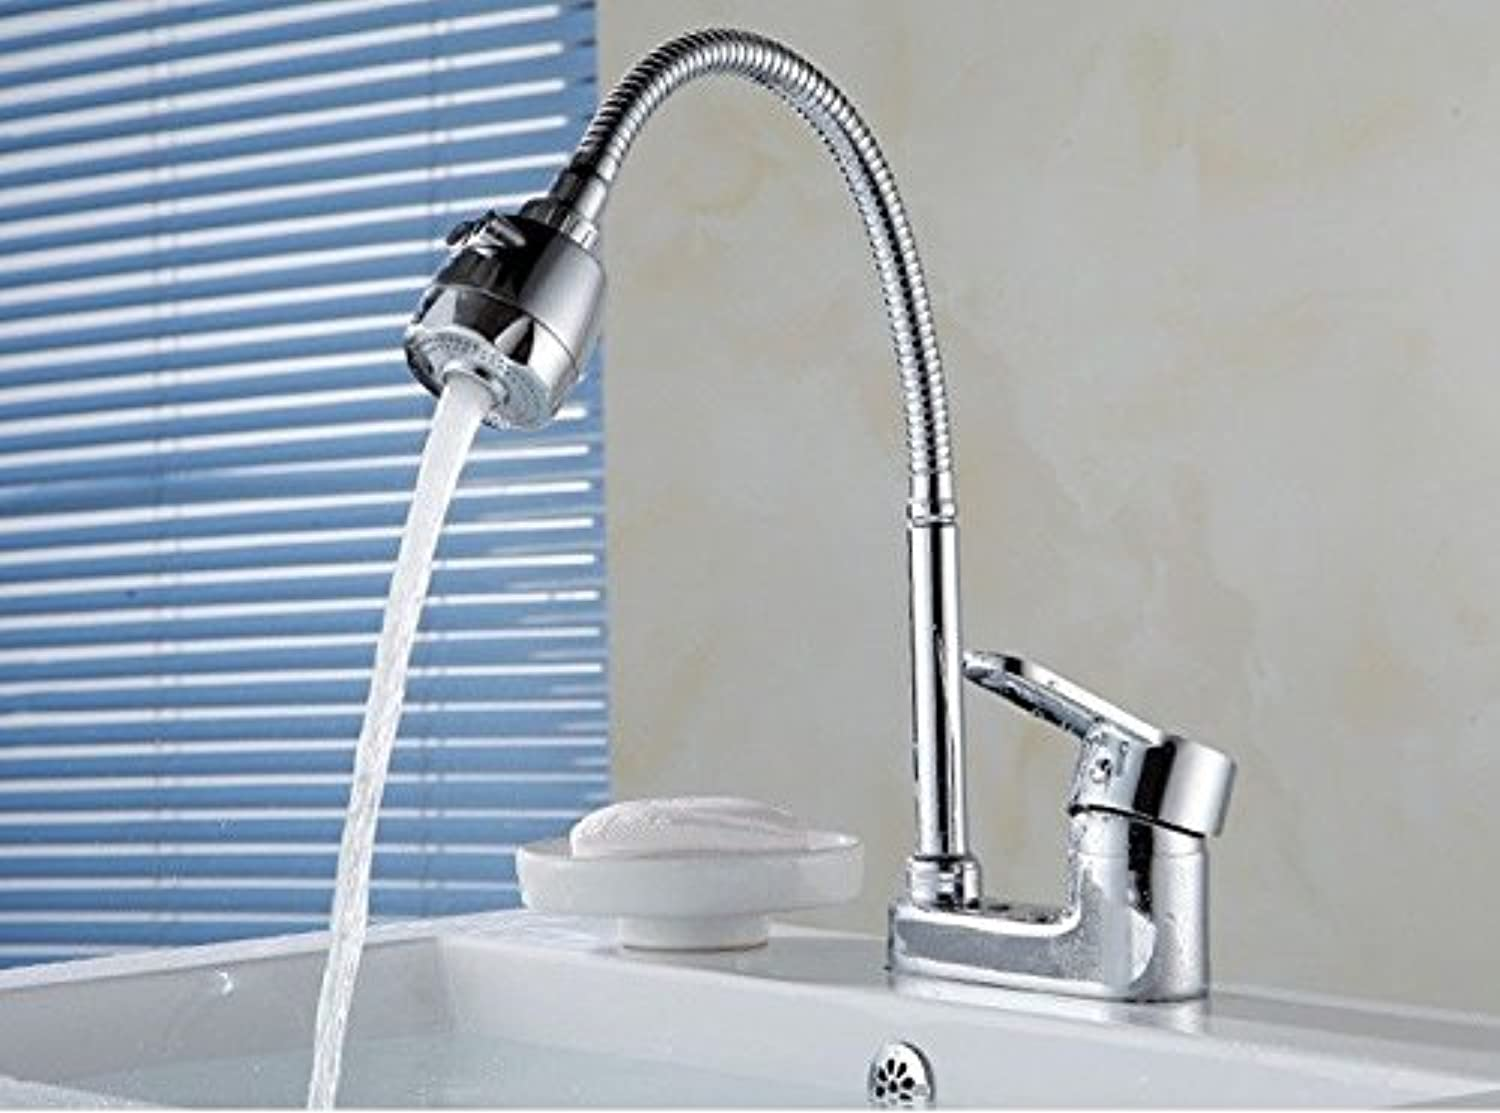 JWLT Washbasin, Faucet Bathroom, hot and Cold wash Basin, Double Hole Three Hole wash Basin, face Plate Faucet,B Vientiane hot and Cold 80cm Steel Wire Pipe